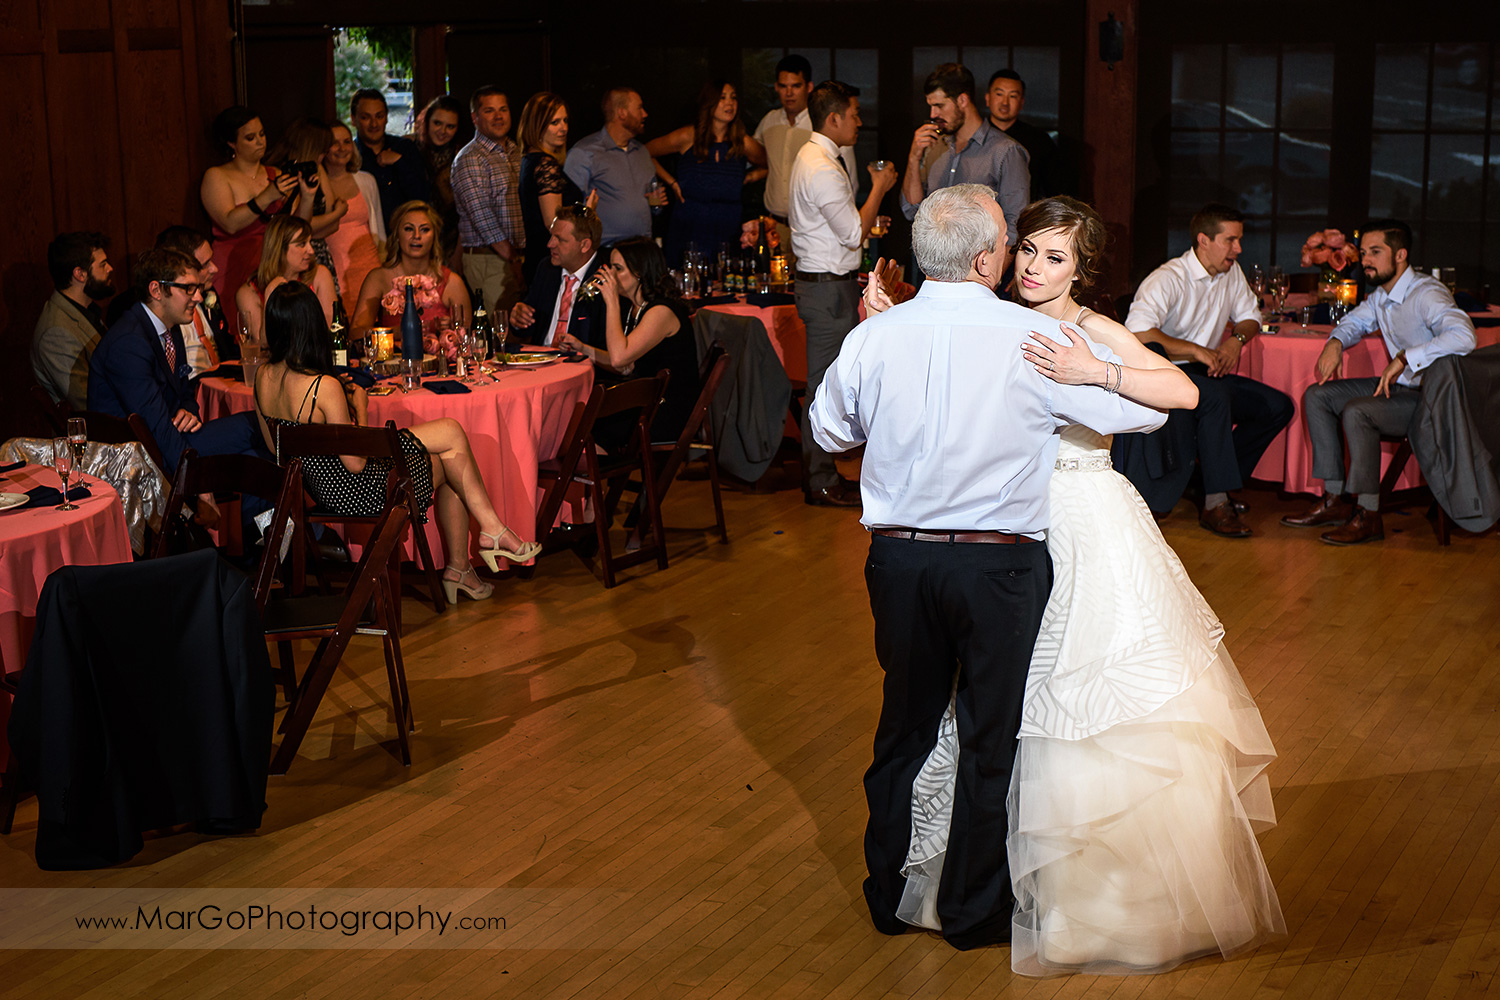 bride dancing with father during wedding reception at Saratoga Foothill Club